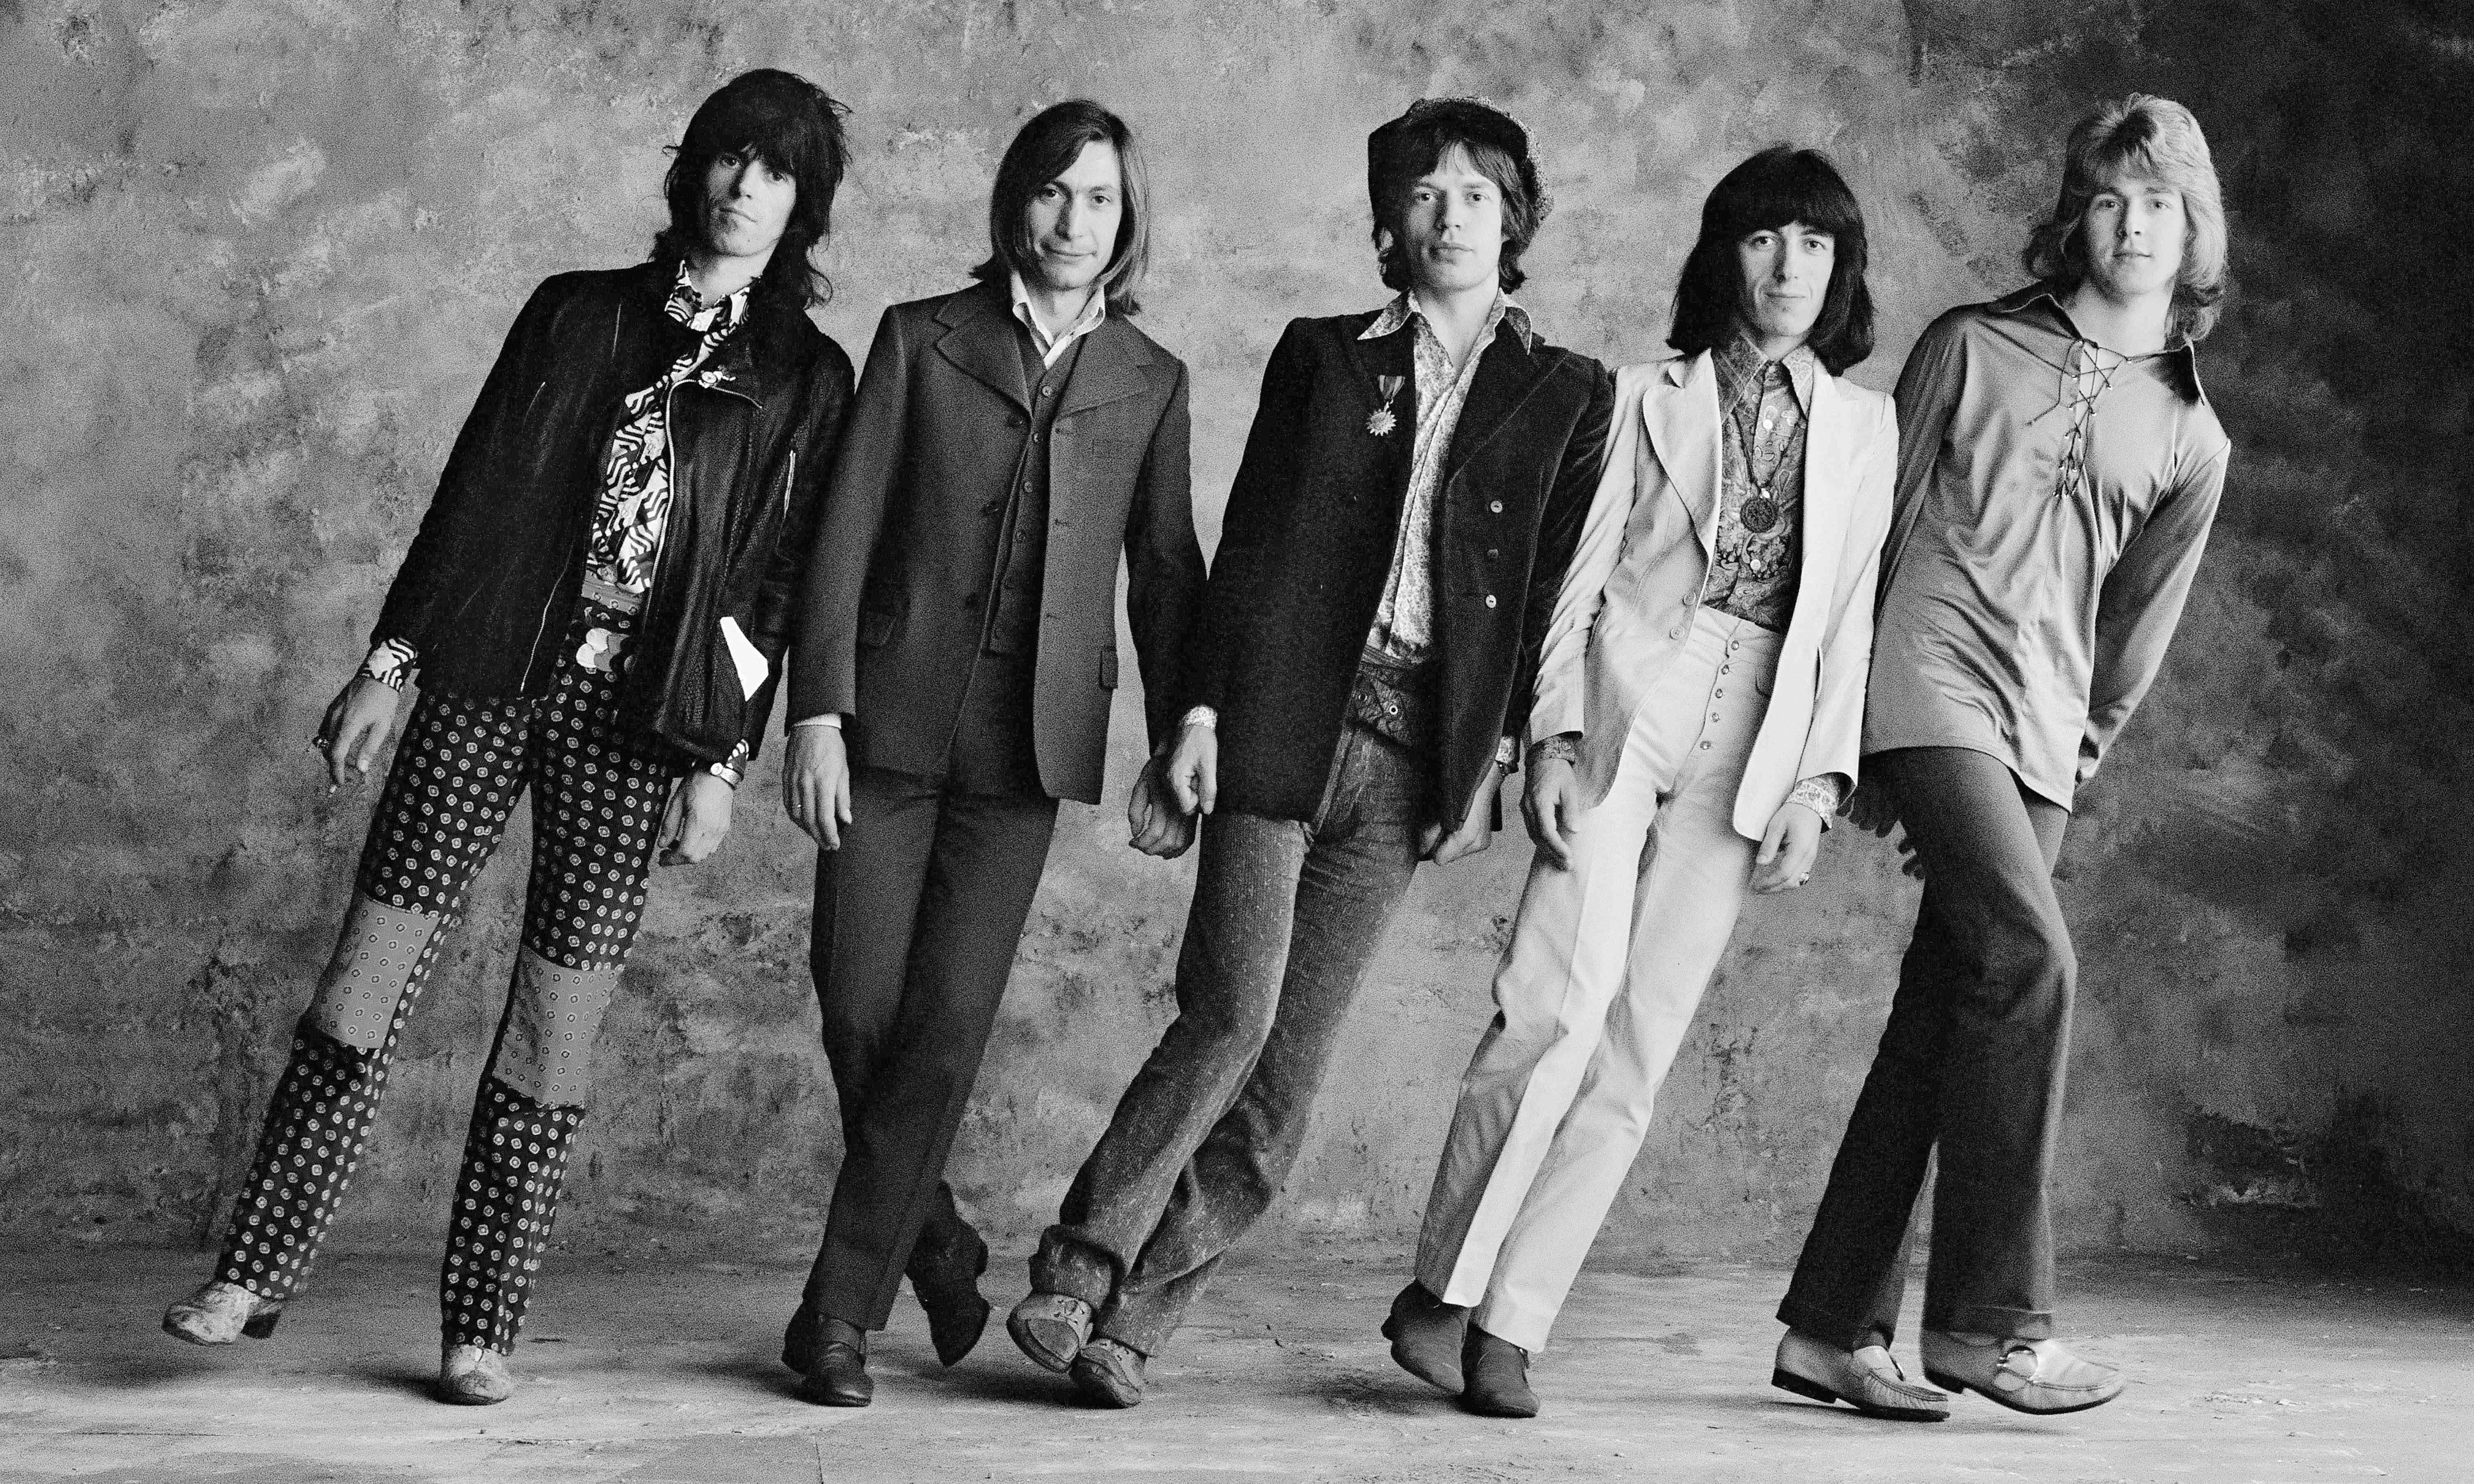 The Cambridge Companion to the Rolling Stones, edited by Victor Coelho and John Covach – review